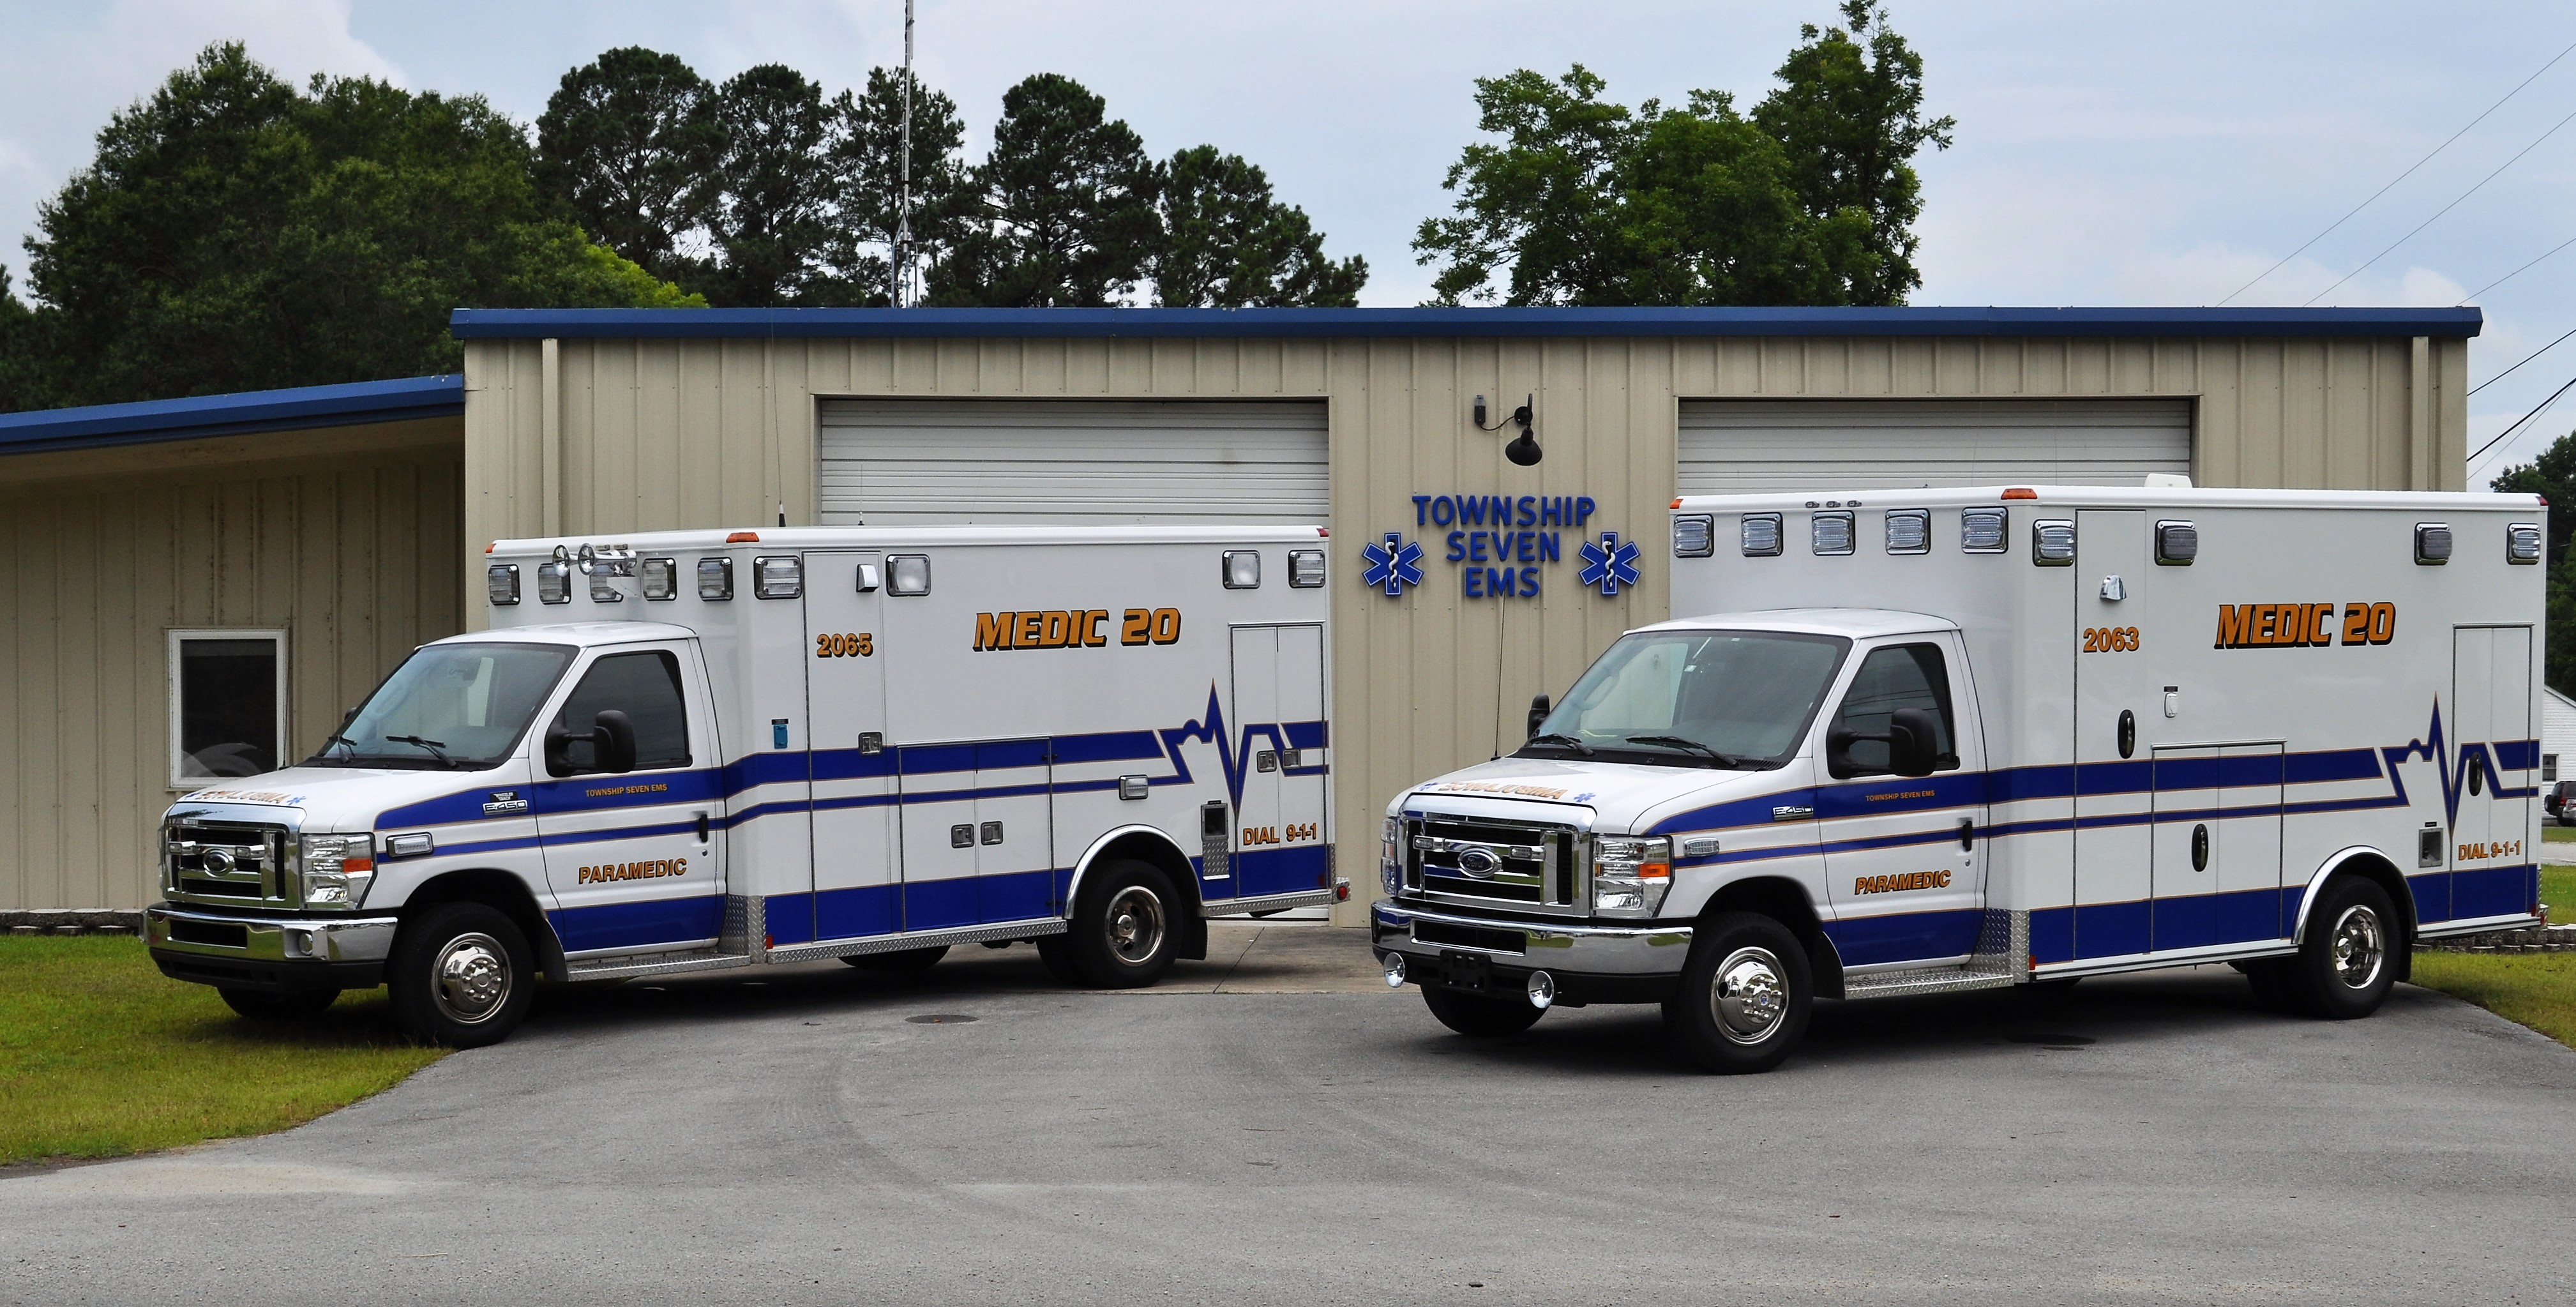 Township Seven EMS